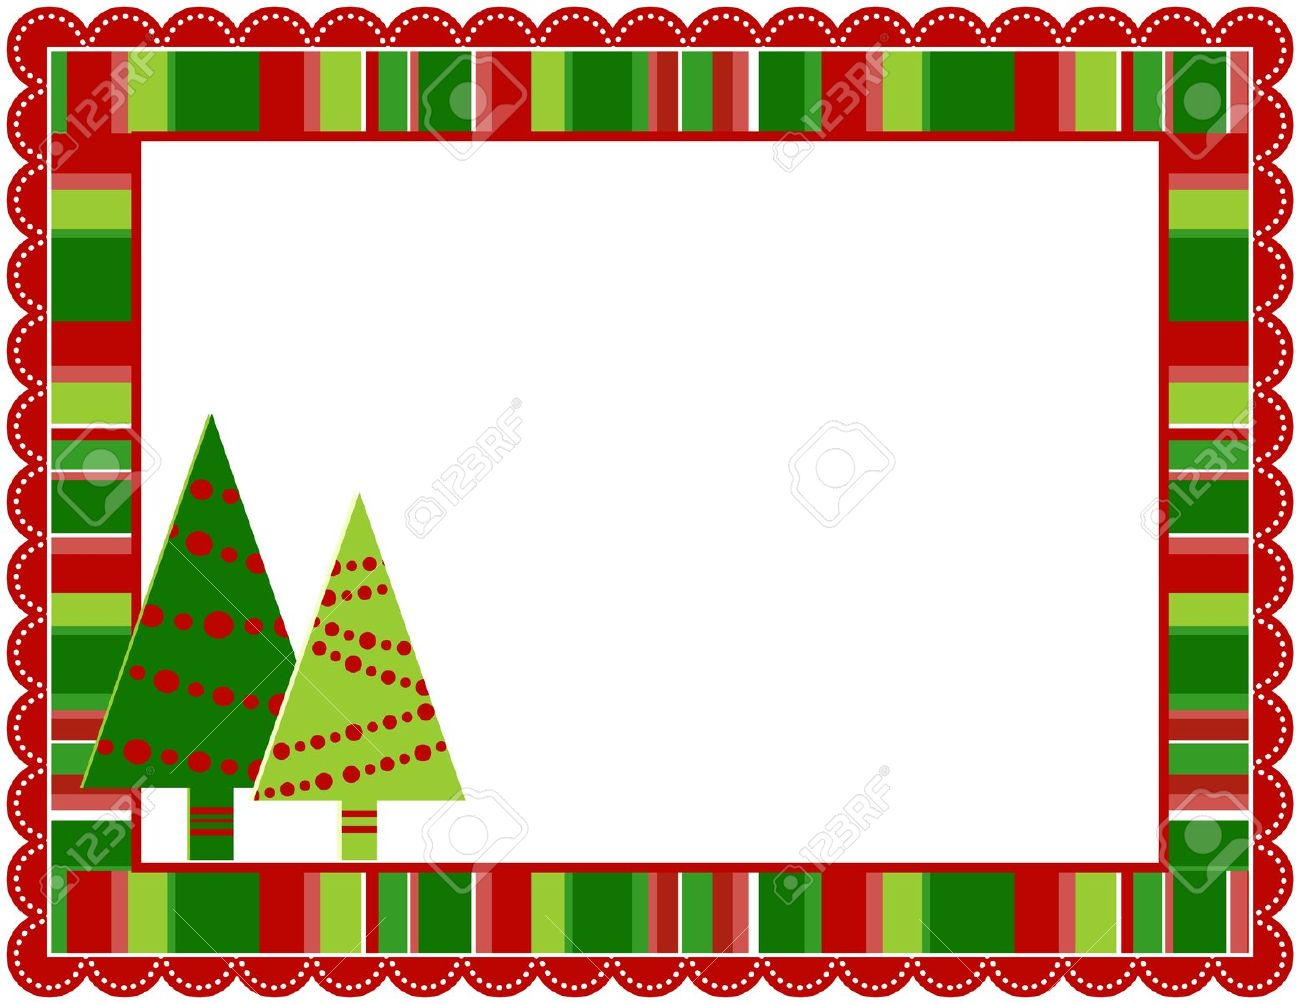 Christmas Borders Clipart.Christmas Clipart Borders Free Download Best Christmas